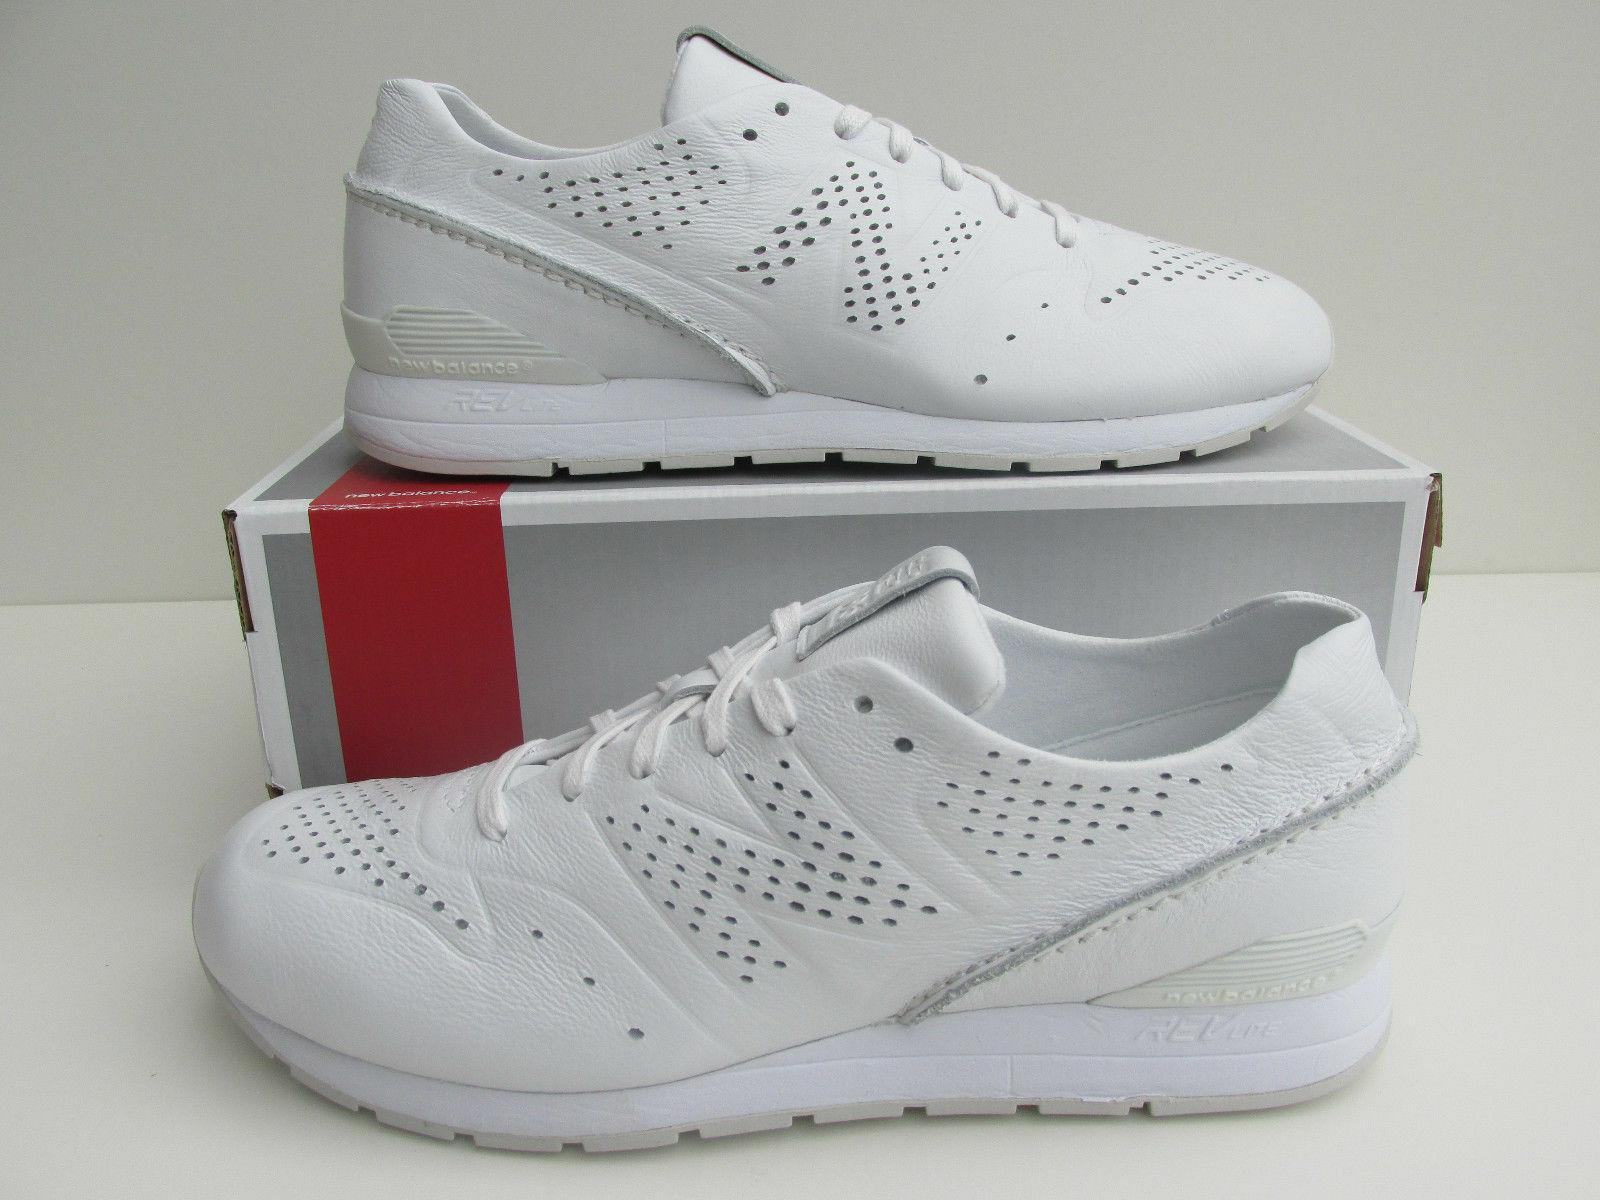 BNIB NEW BALANCE  996 DT RE-ENGINEERED white leather RARE  MODEL